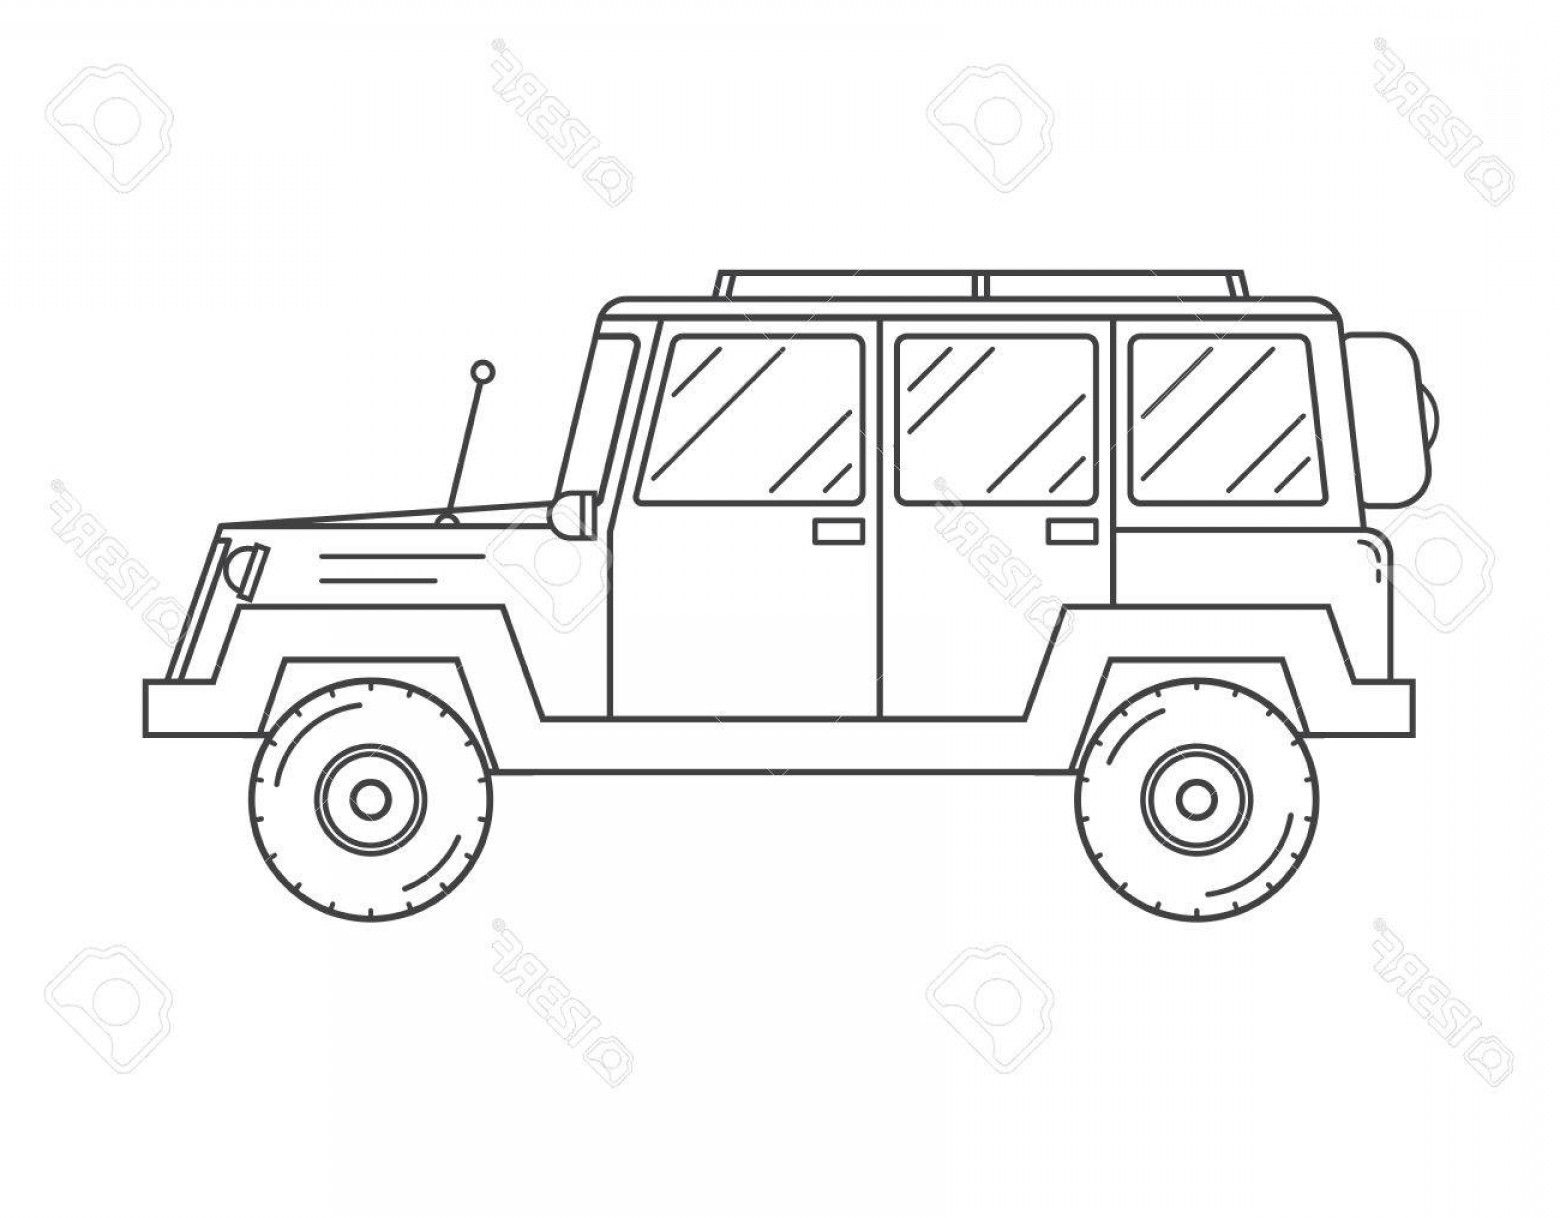 Vector Clip Art Of Jeep: Photostock Vector Adventure Traveler Truck Outline And Thin Line Icon Suv Jeep For Safari And Extreme Travel Pictogram